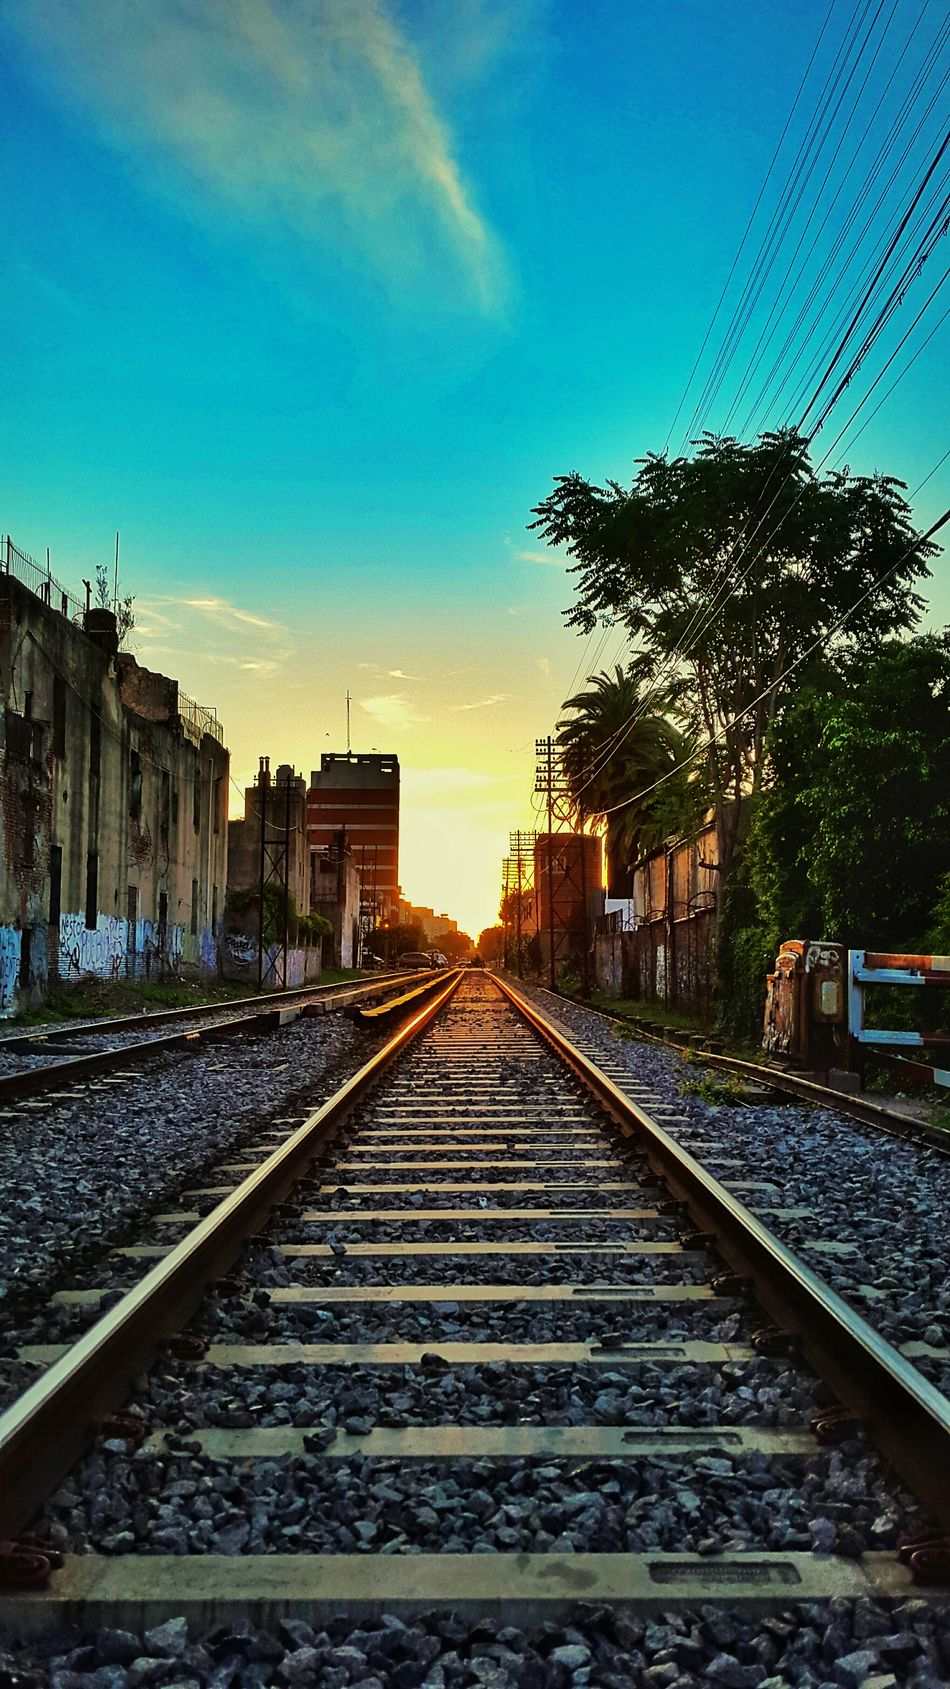 No People Outdoor Buenos Aires, Argentina  Sunset Train Sunset_collection EyeEm Buenos Aires Barrio De Flores Buenos Aires Argentina Railroad Colors